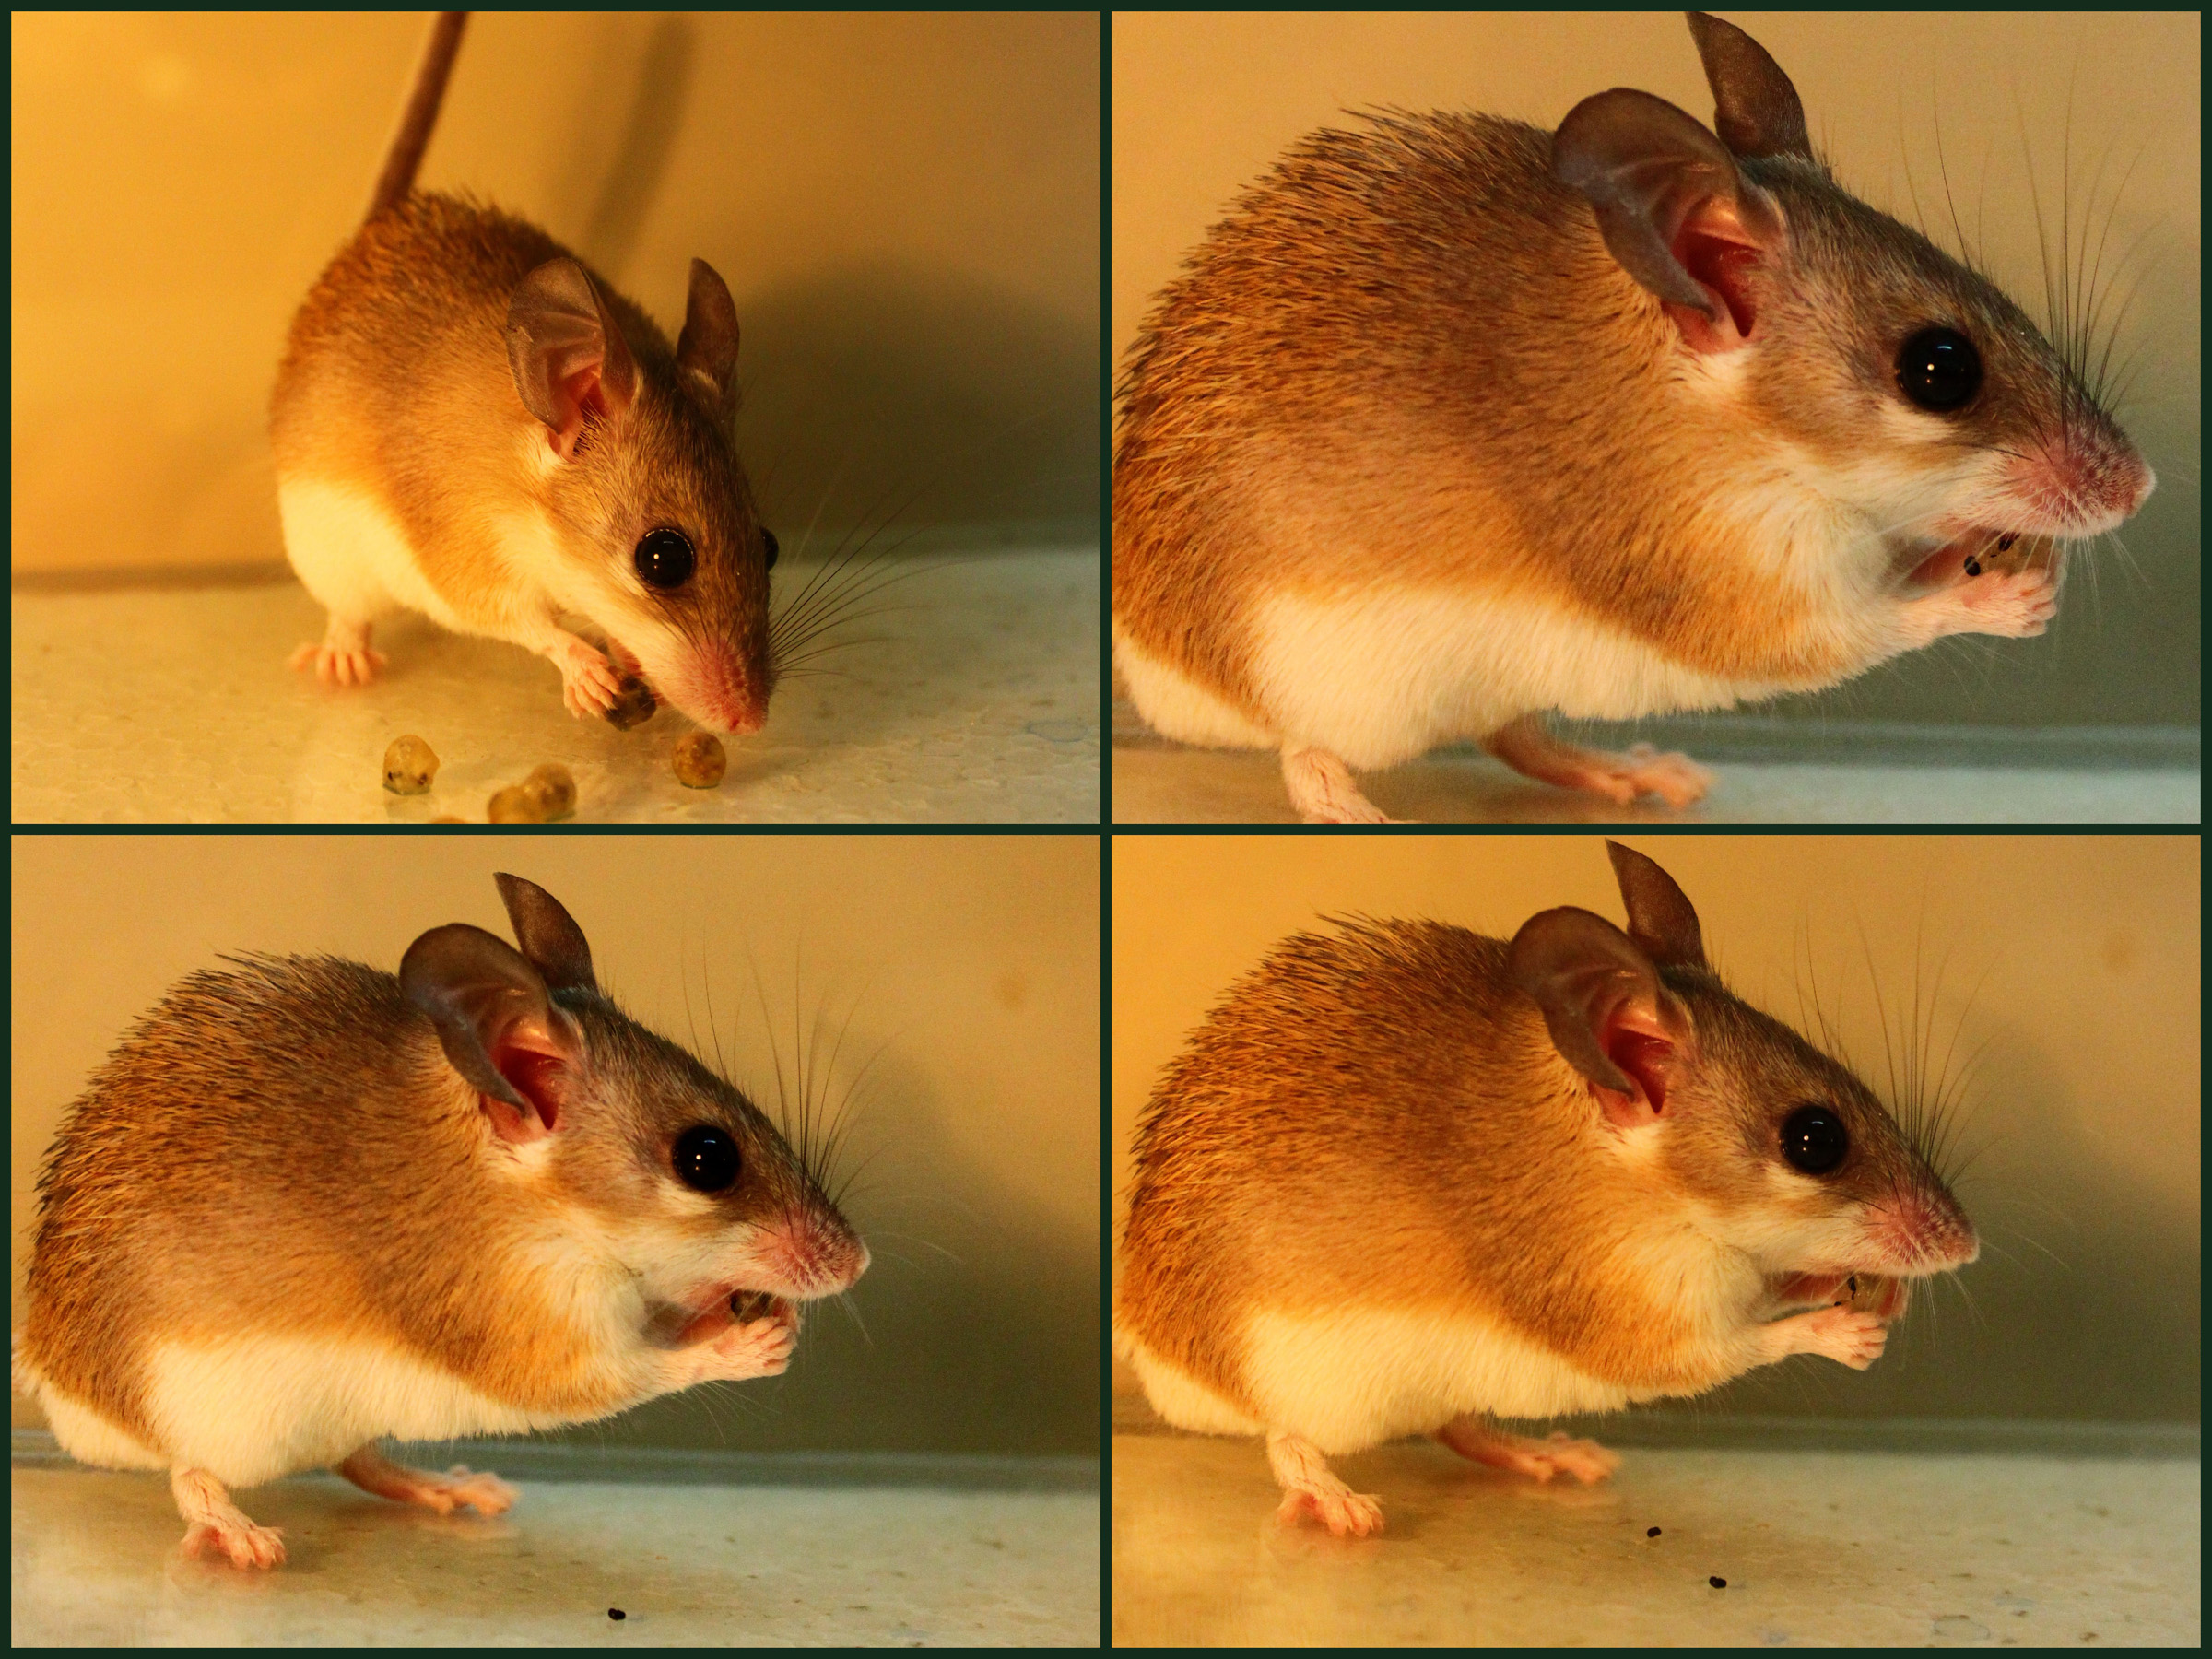 A spiny mouse from Israel's Negev Desert starts eating berries from the shrub Ochradenus baccatus (upper left). It soon spits seeds into its paws (upper right) and onto the ground (lower right and lower left). If the seeds were chewed at the same time as the fruit pulp, toxic chemicals would be released. So the plant has effectively turned the mouse from a seed-eater into a seed-spreader to help the plant reproduce, according to a new study from the Technion-Israel Institute of Technology, University of Utah and other institutions.